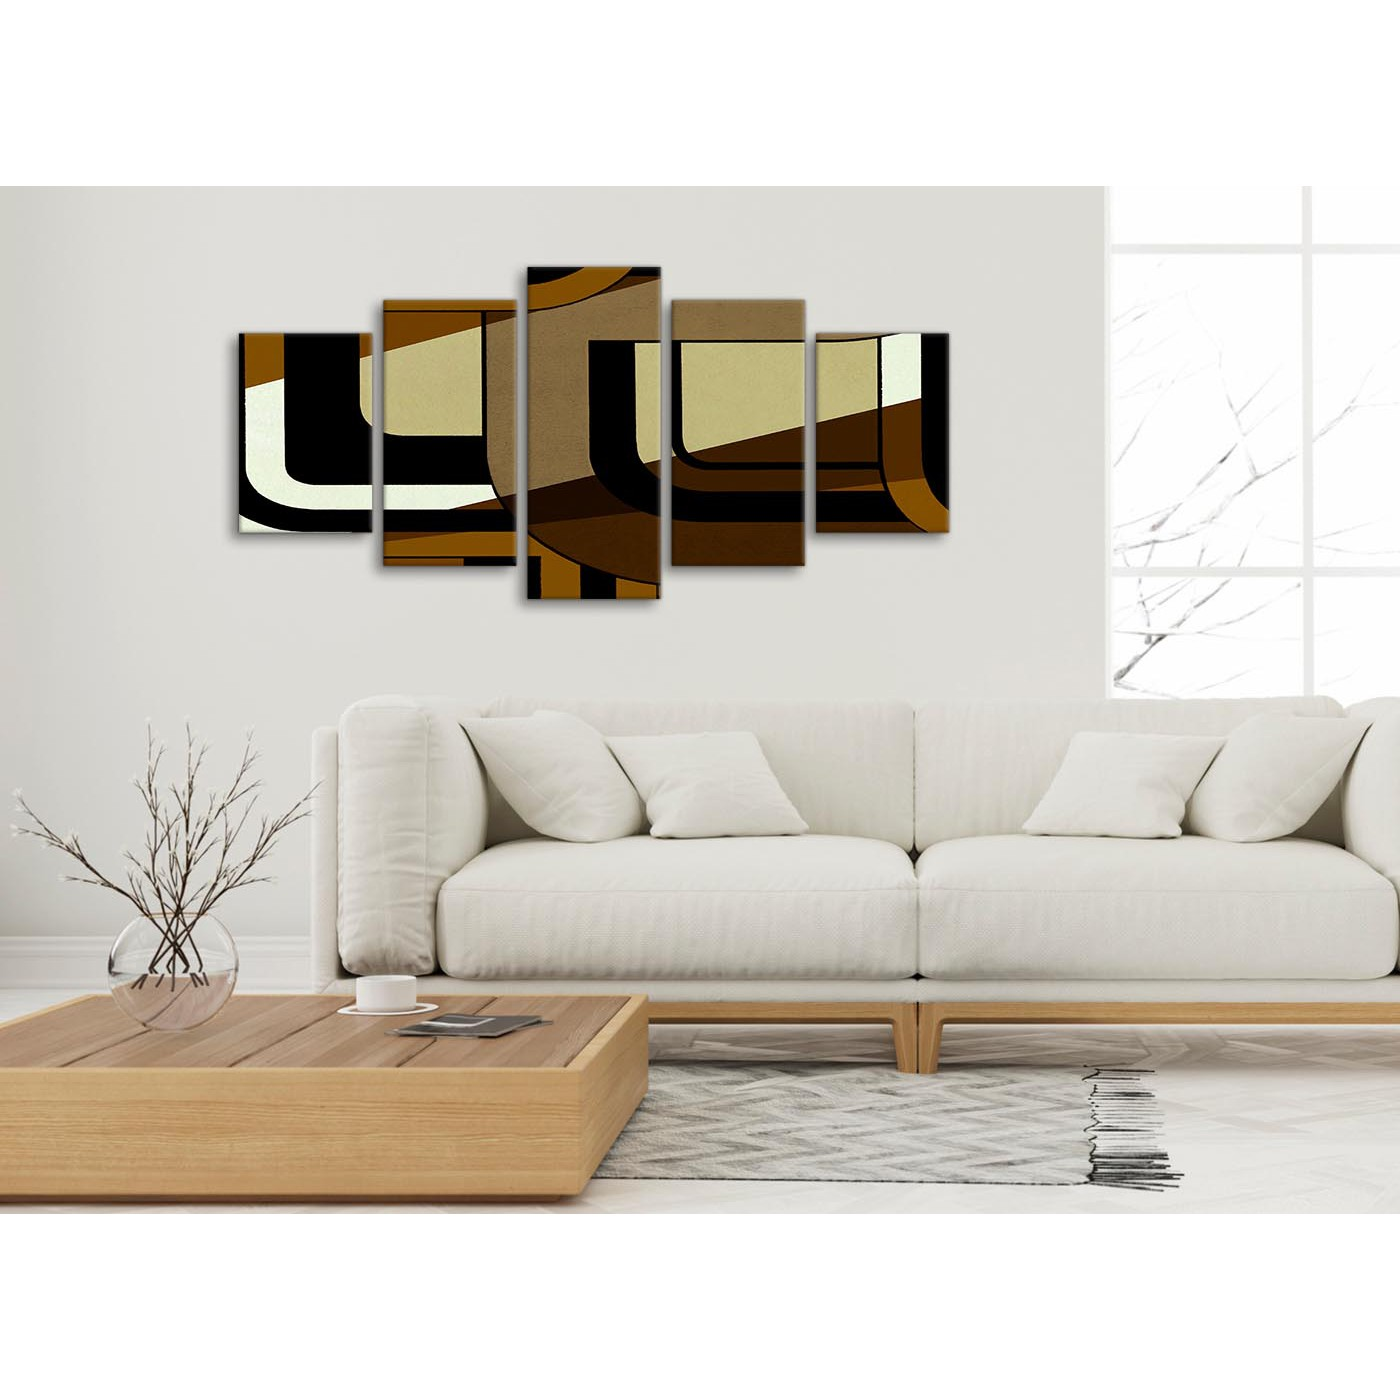 Bedroom Canvas Wall Art Uk: 5 Panel Brown Cream Painting Abstract Living Room Canvas